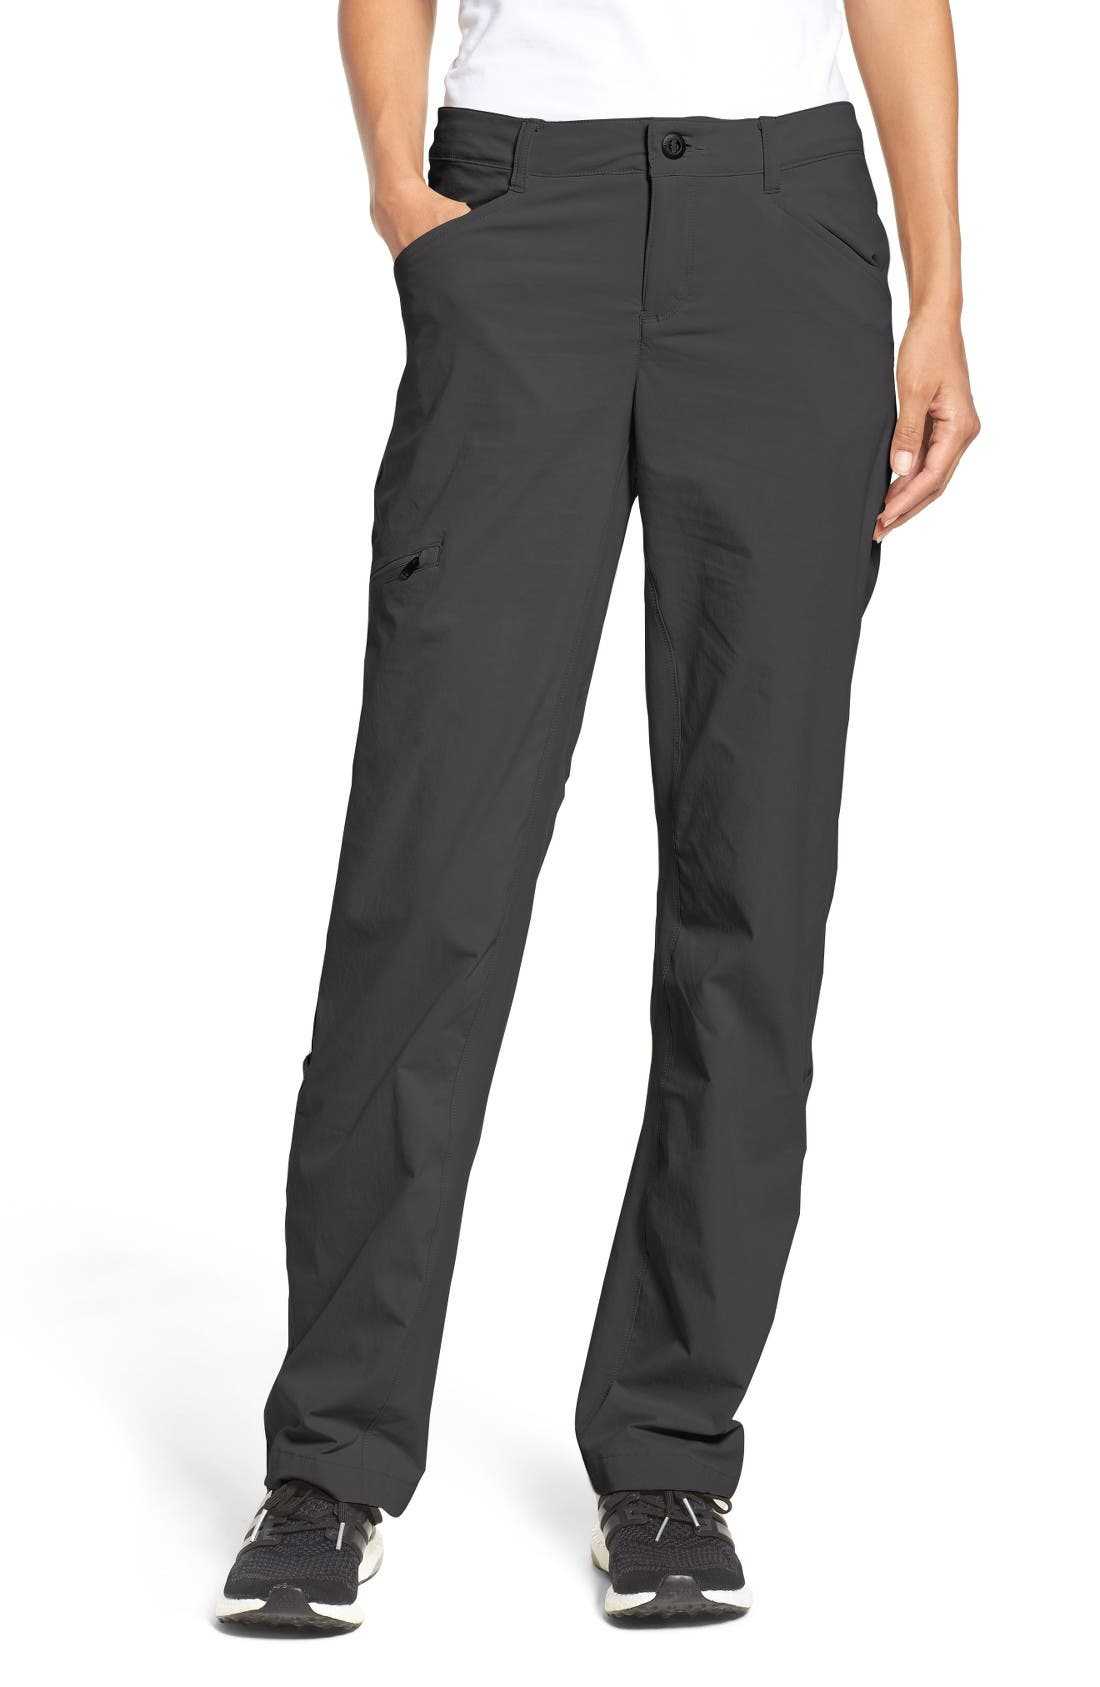 PATAGONIA, Quandary Pants, Main thumbnail 1, color, FORGE GREY